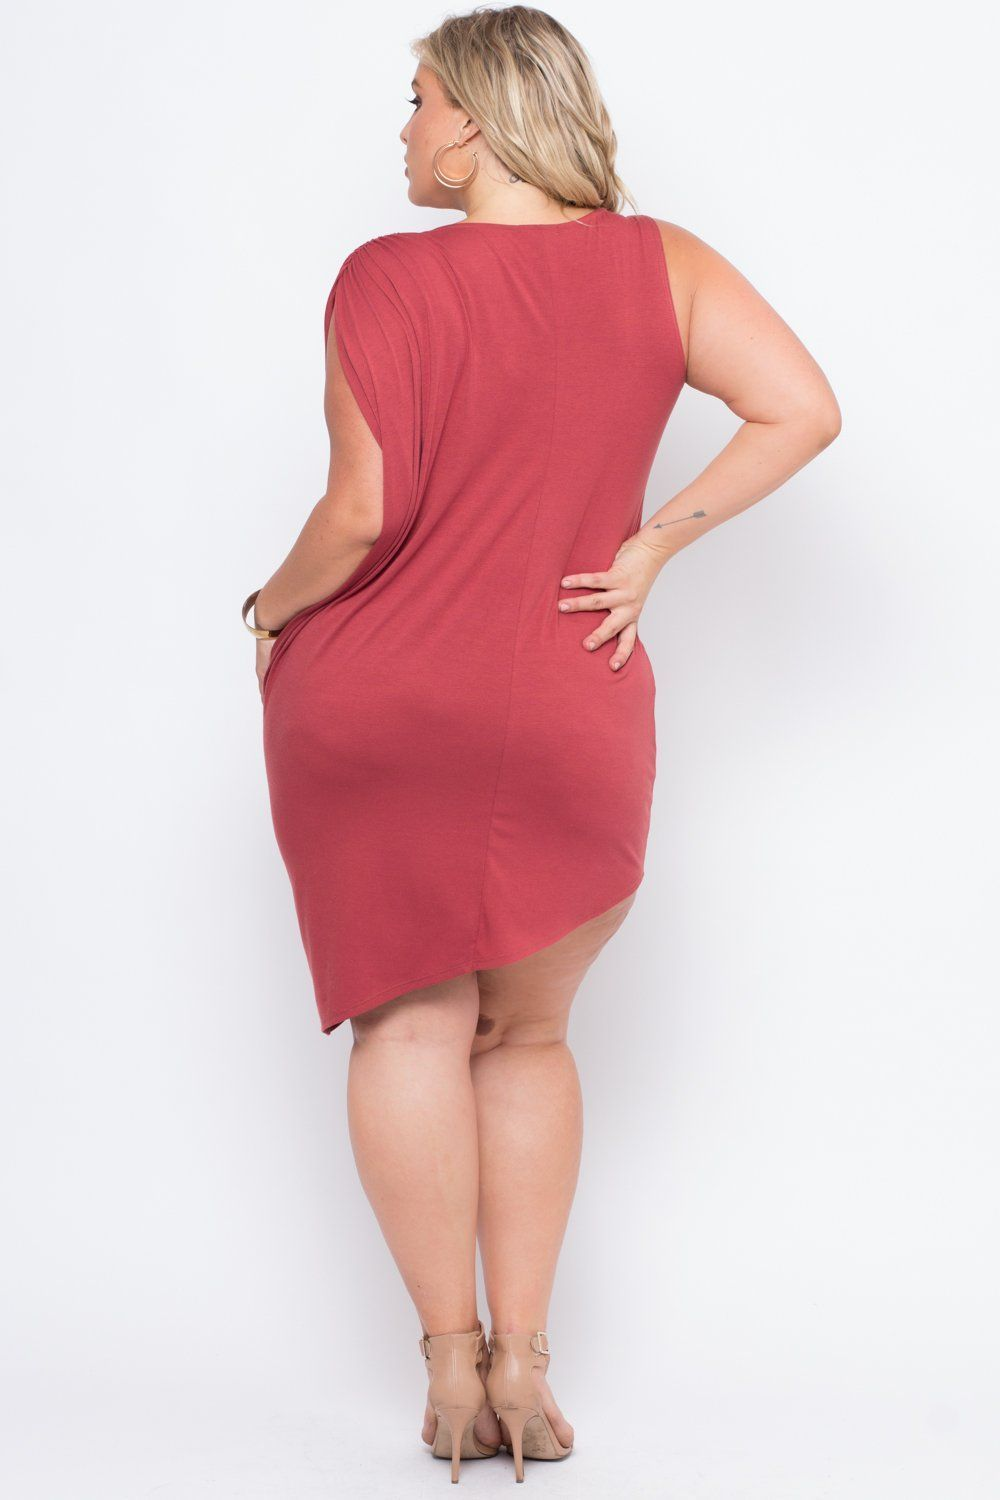 This plus size extra stretch jersey knit dress features a round